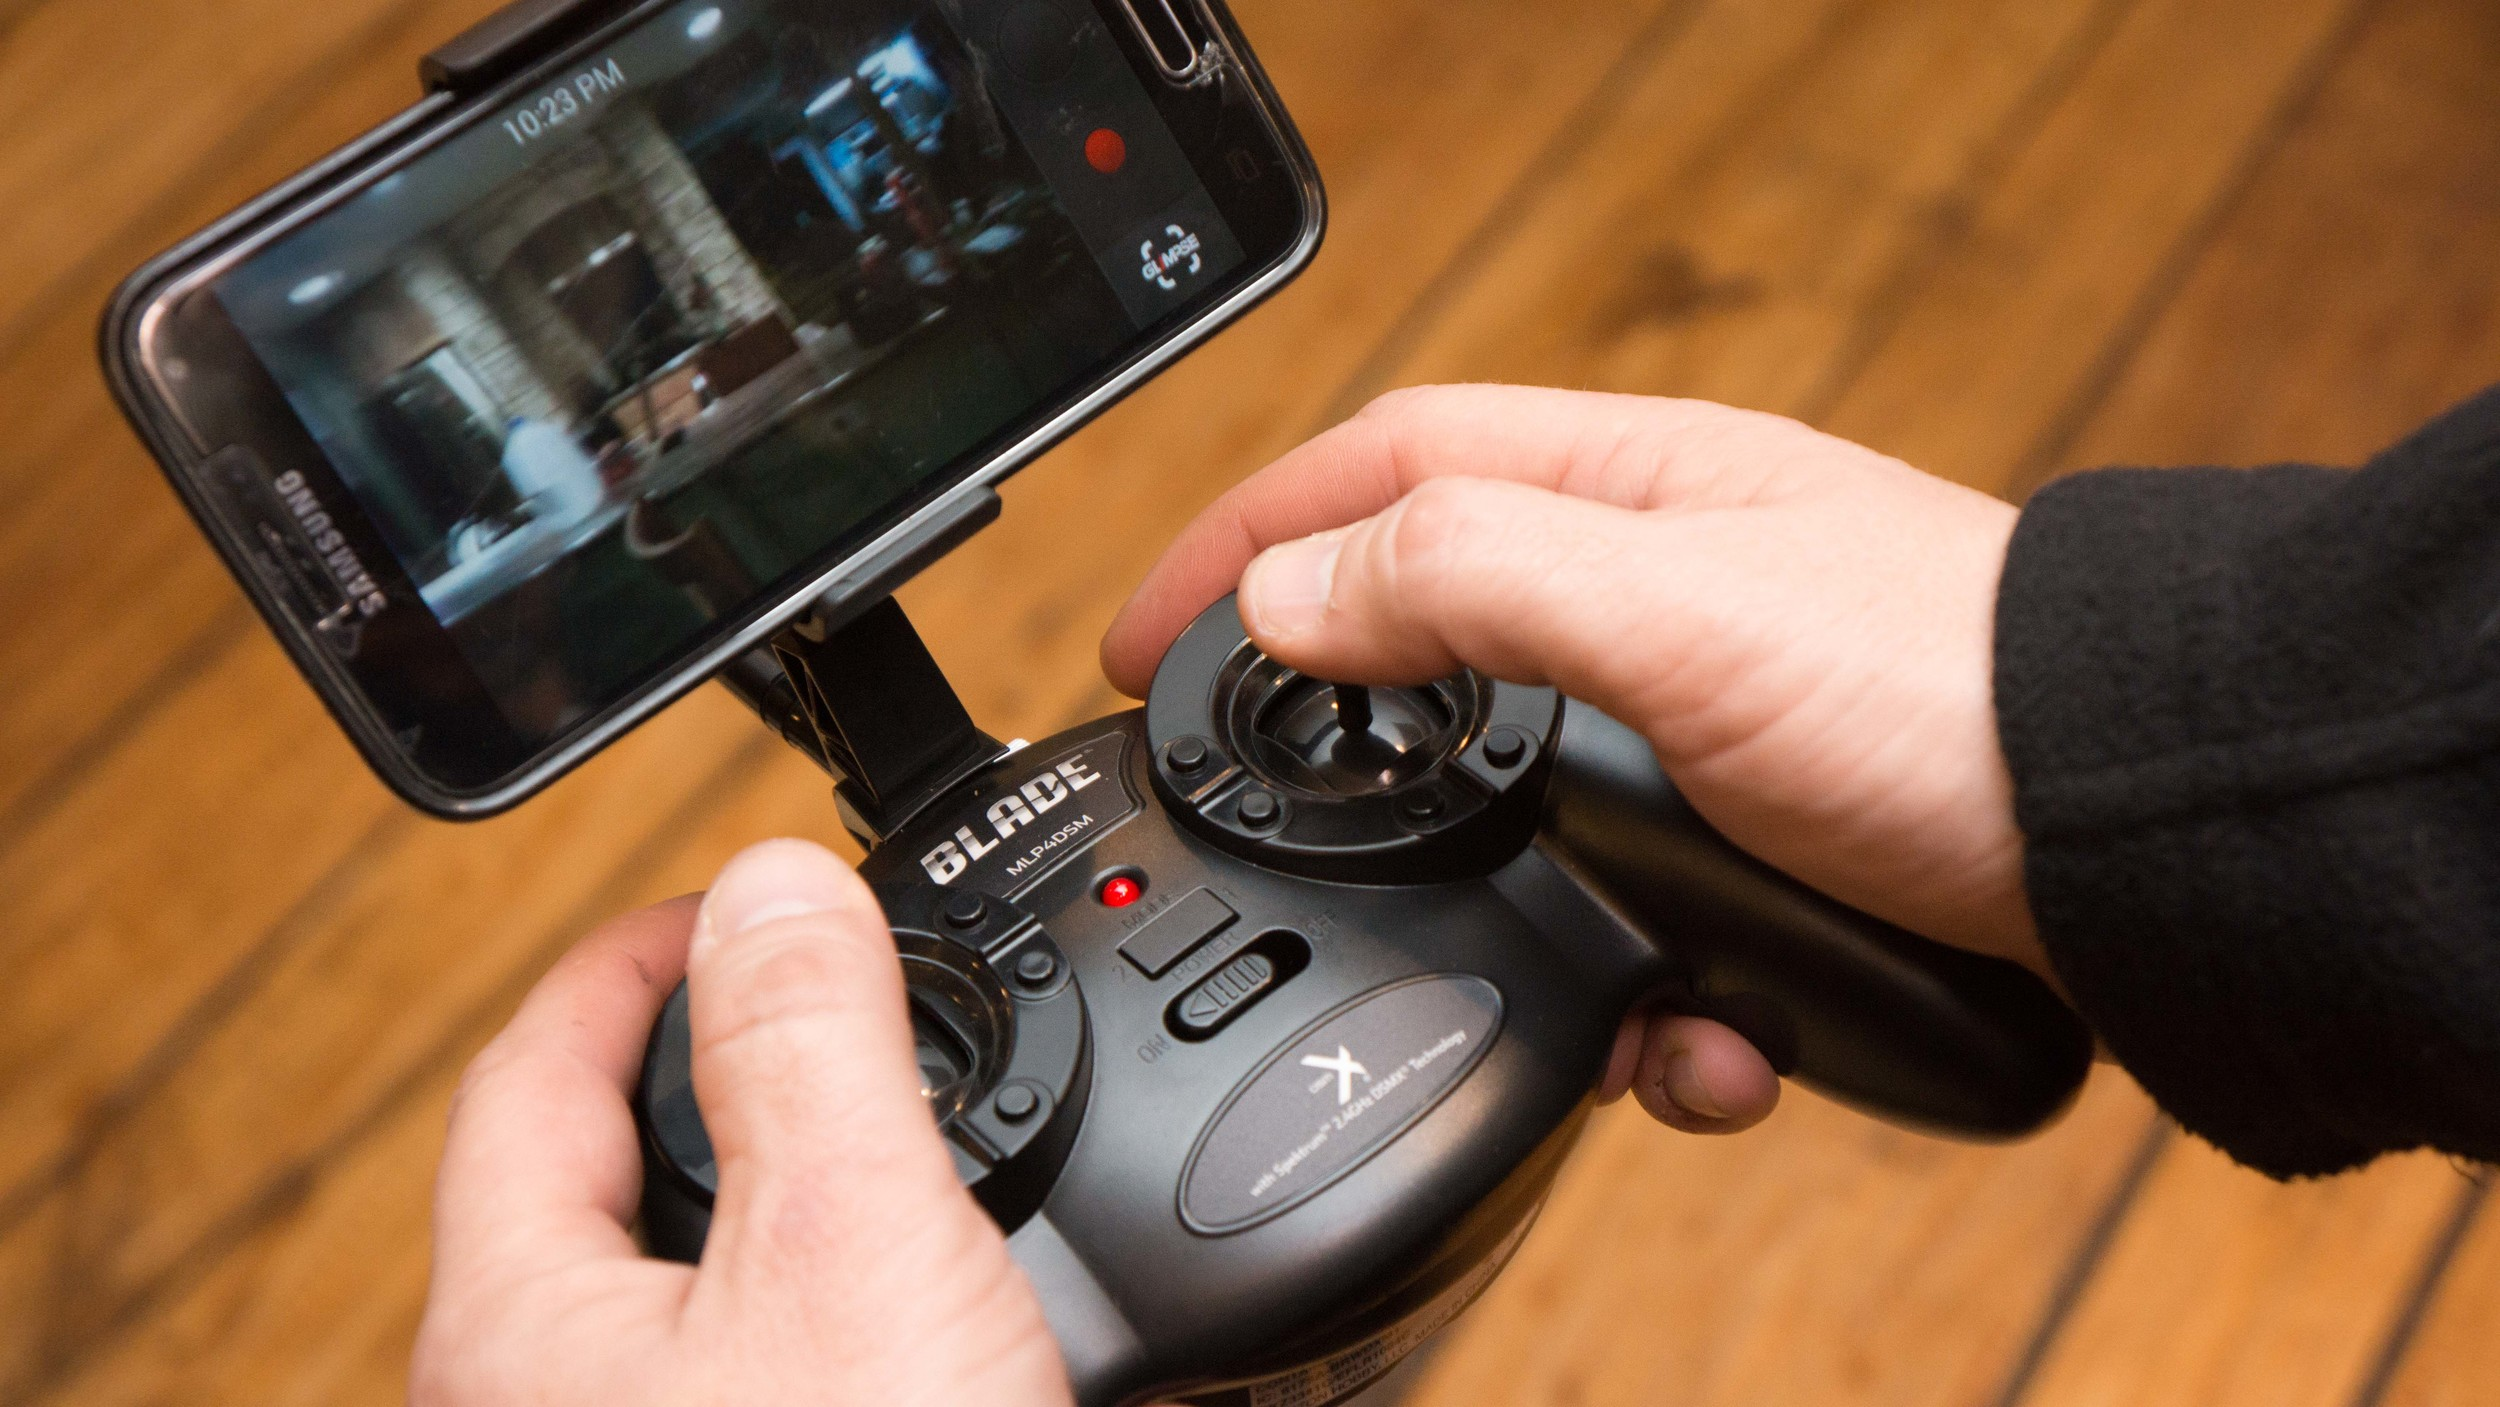 """Blade GLIMPSE FPV Quadcopter transmits video to an APP on your mobile device. The """"trim"""" tabs can be seen on the circular rim of the input sticks."""